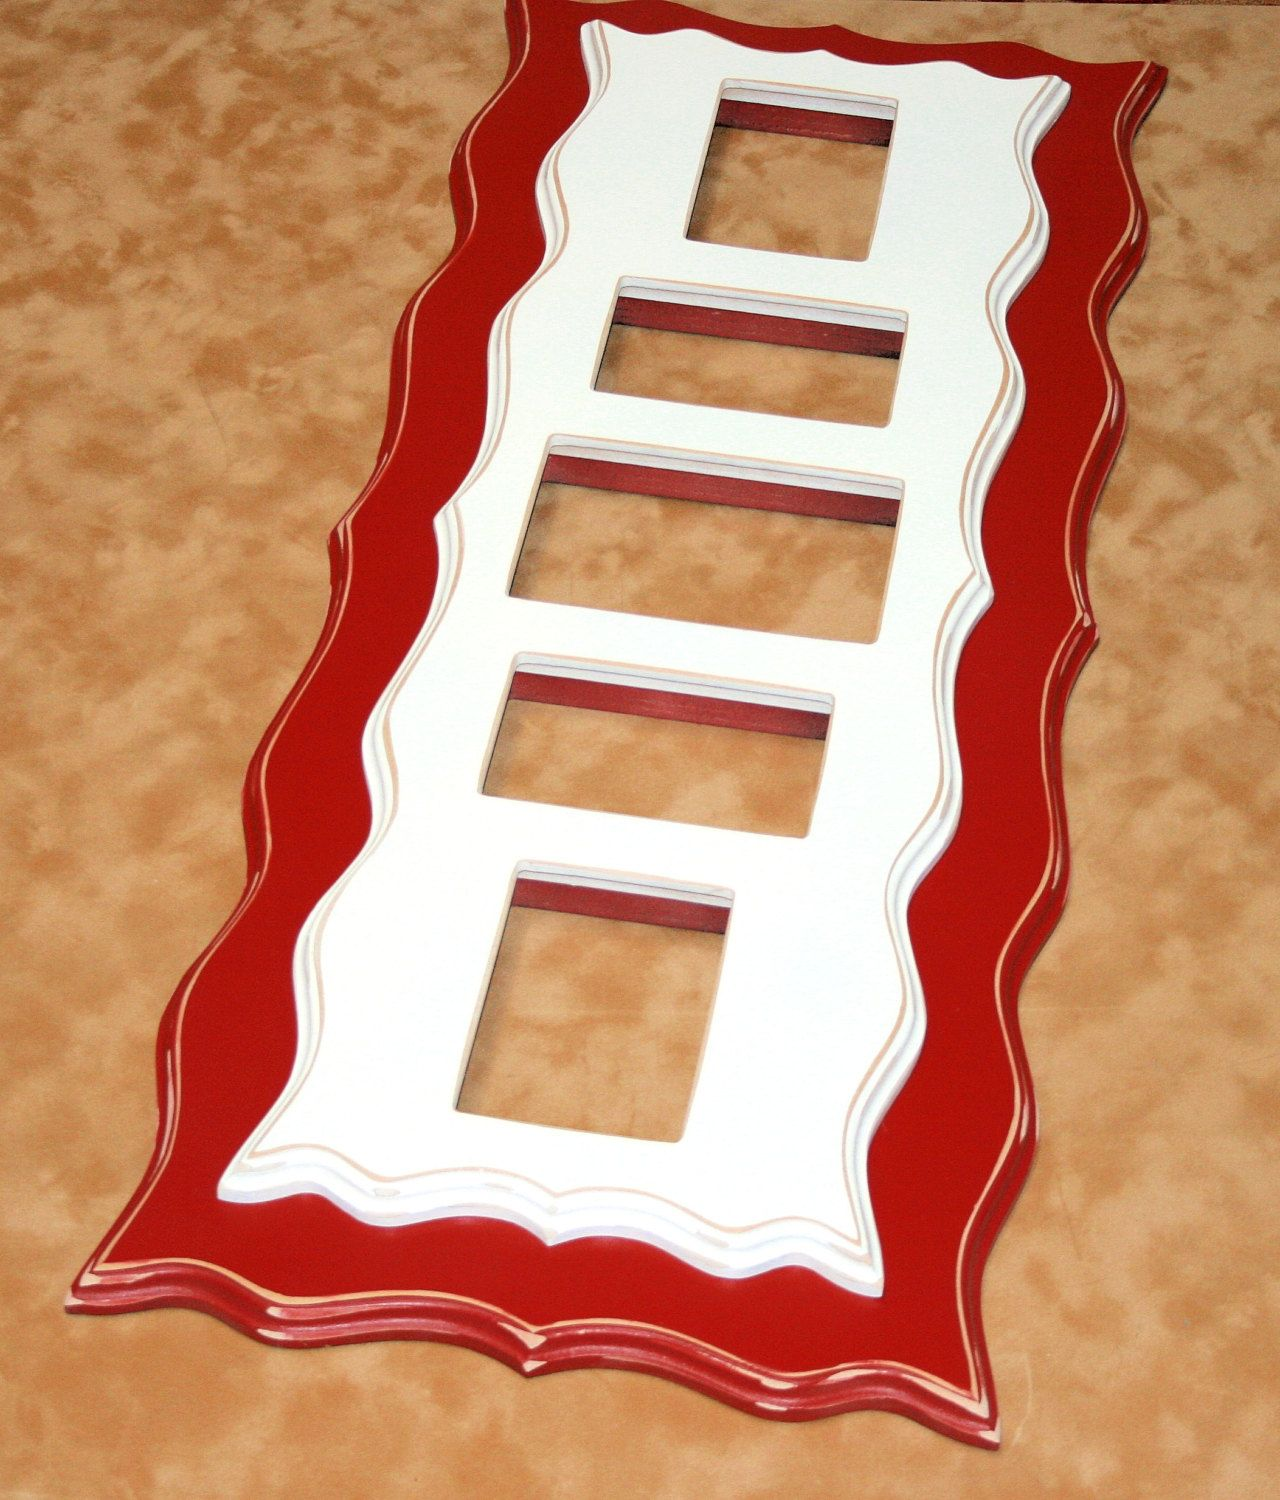 Twin stacked picture frame multi opening 5 openings for 4x6 and twin stacked picture frame multi opening 5 openings for 4x6 and 5x7 multiple shabby whimsical jeuxipadfo Gallery